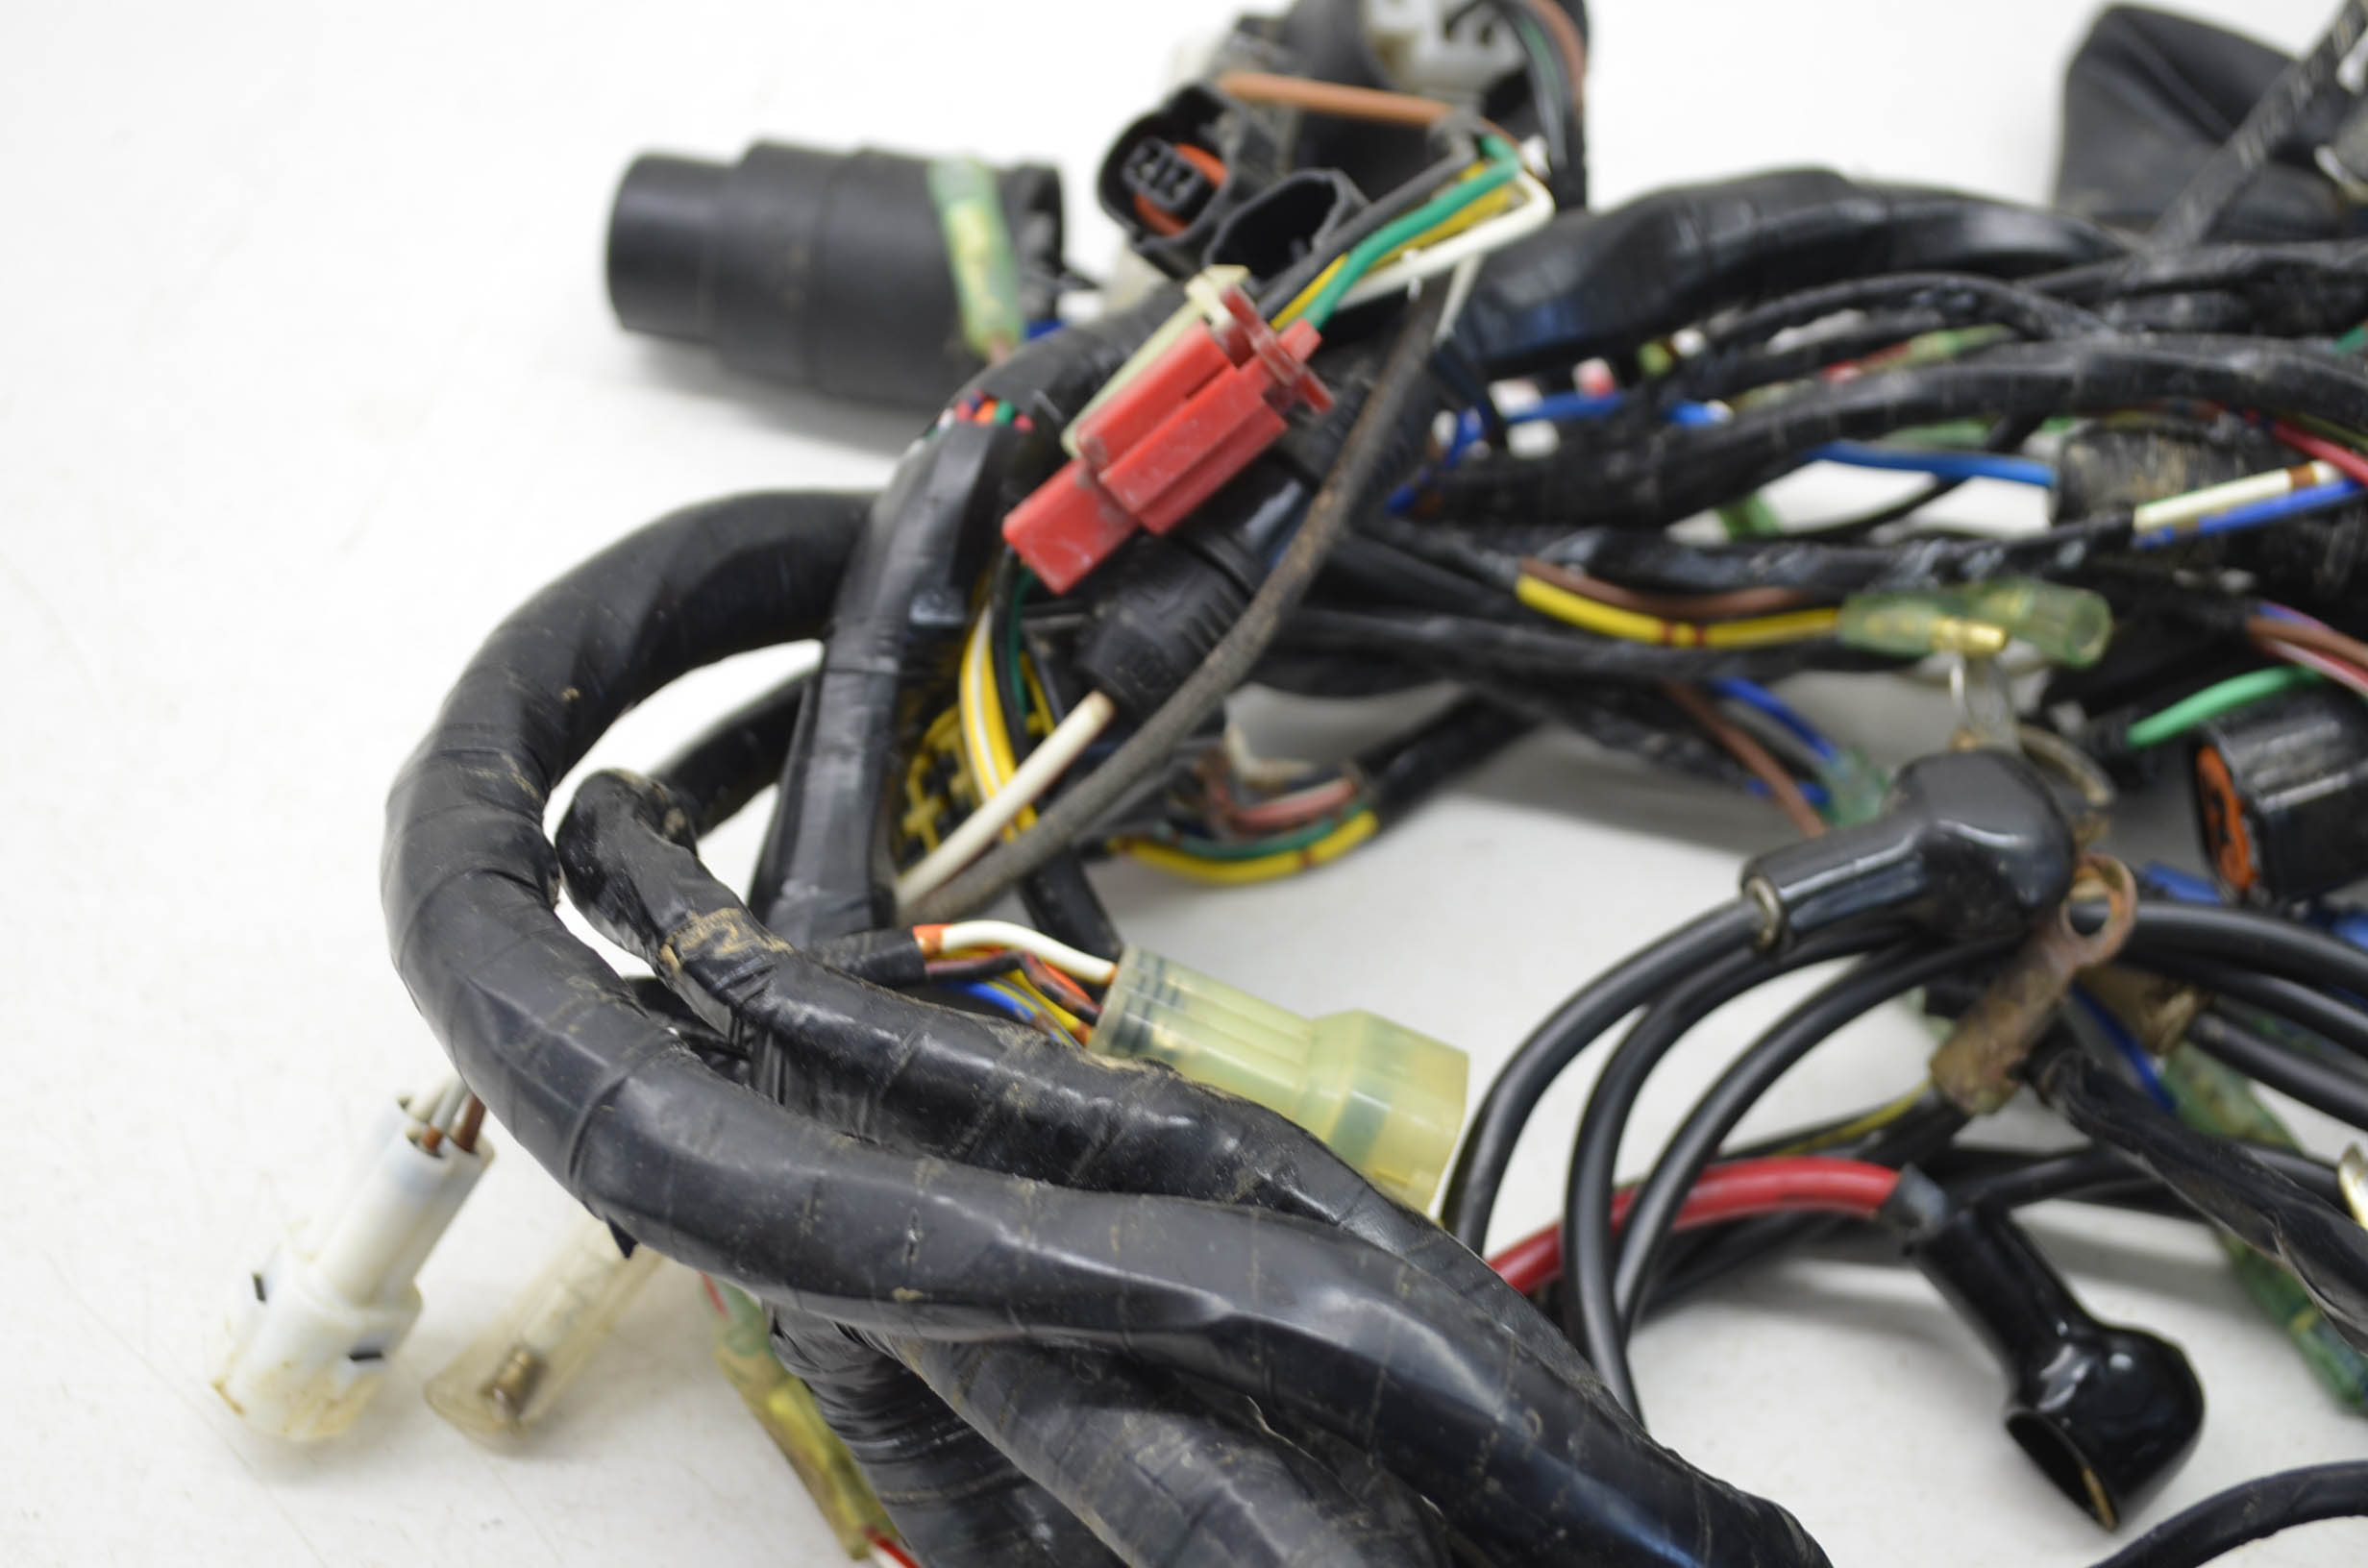 Kawasaki Prairie 360 Wiring Harness - Wiring Diagrams Show on